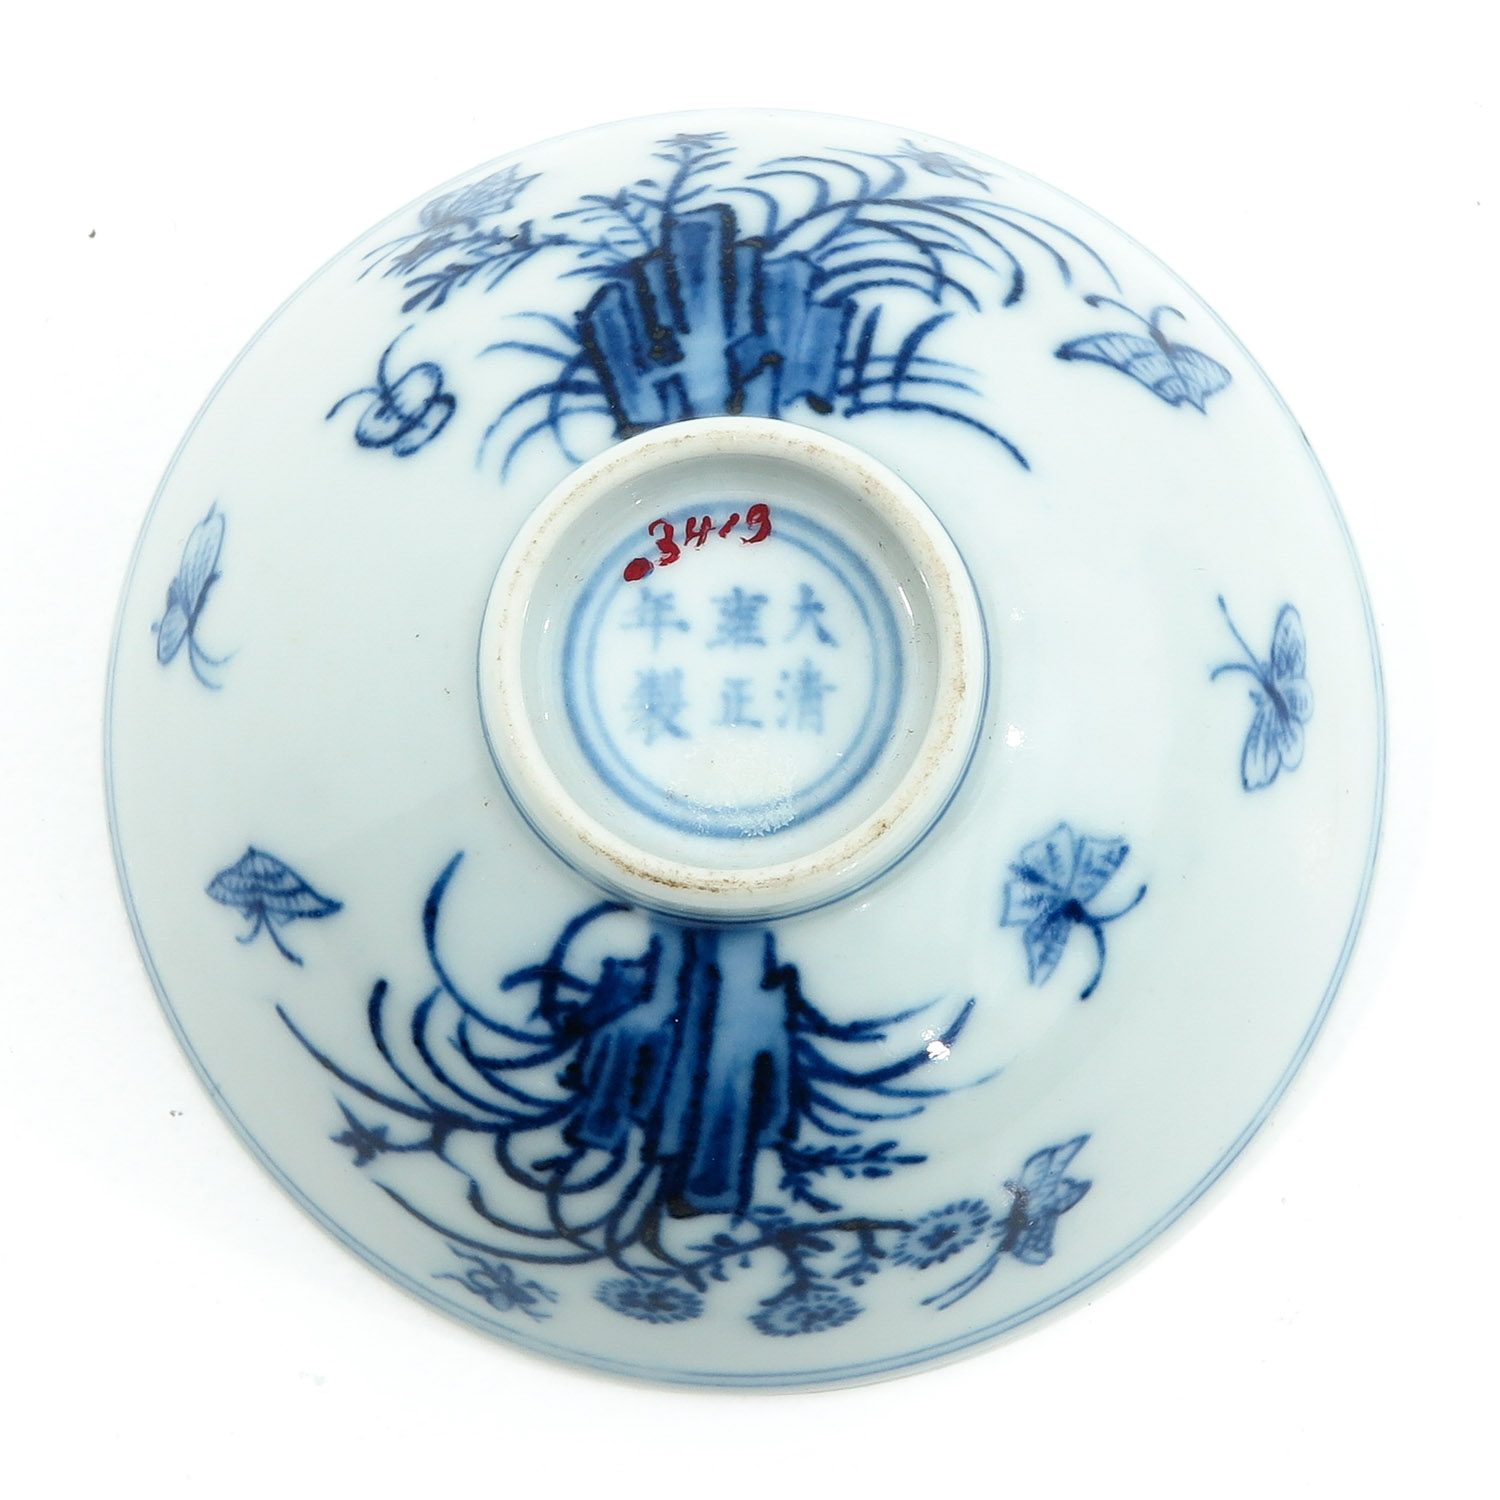 A Blue and White Cup - Image 6 of 9